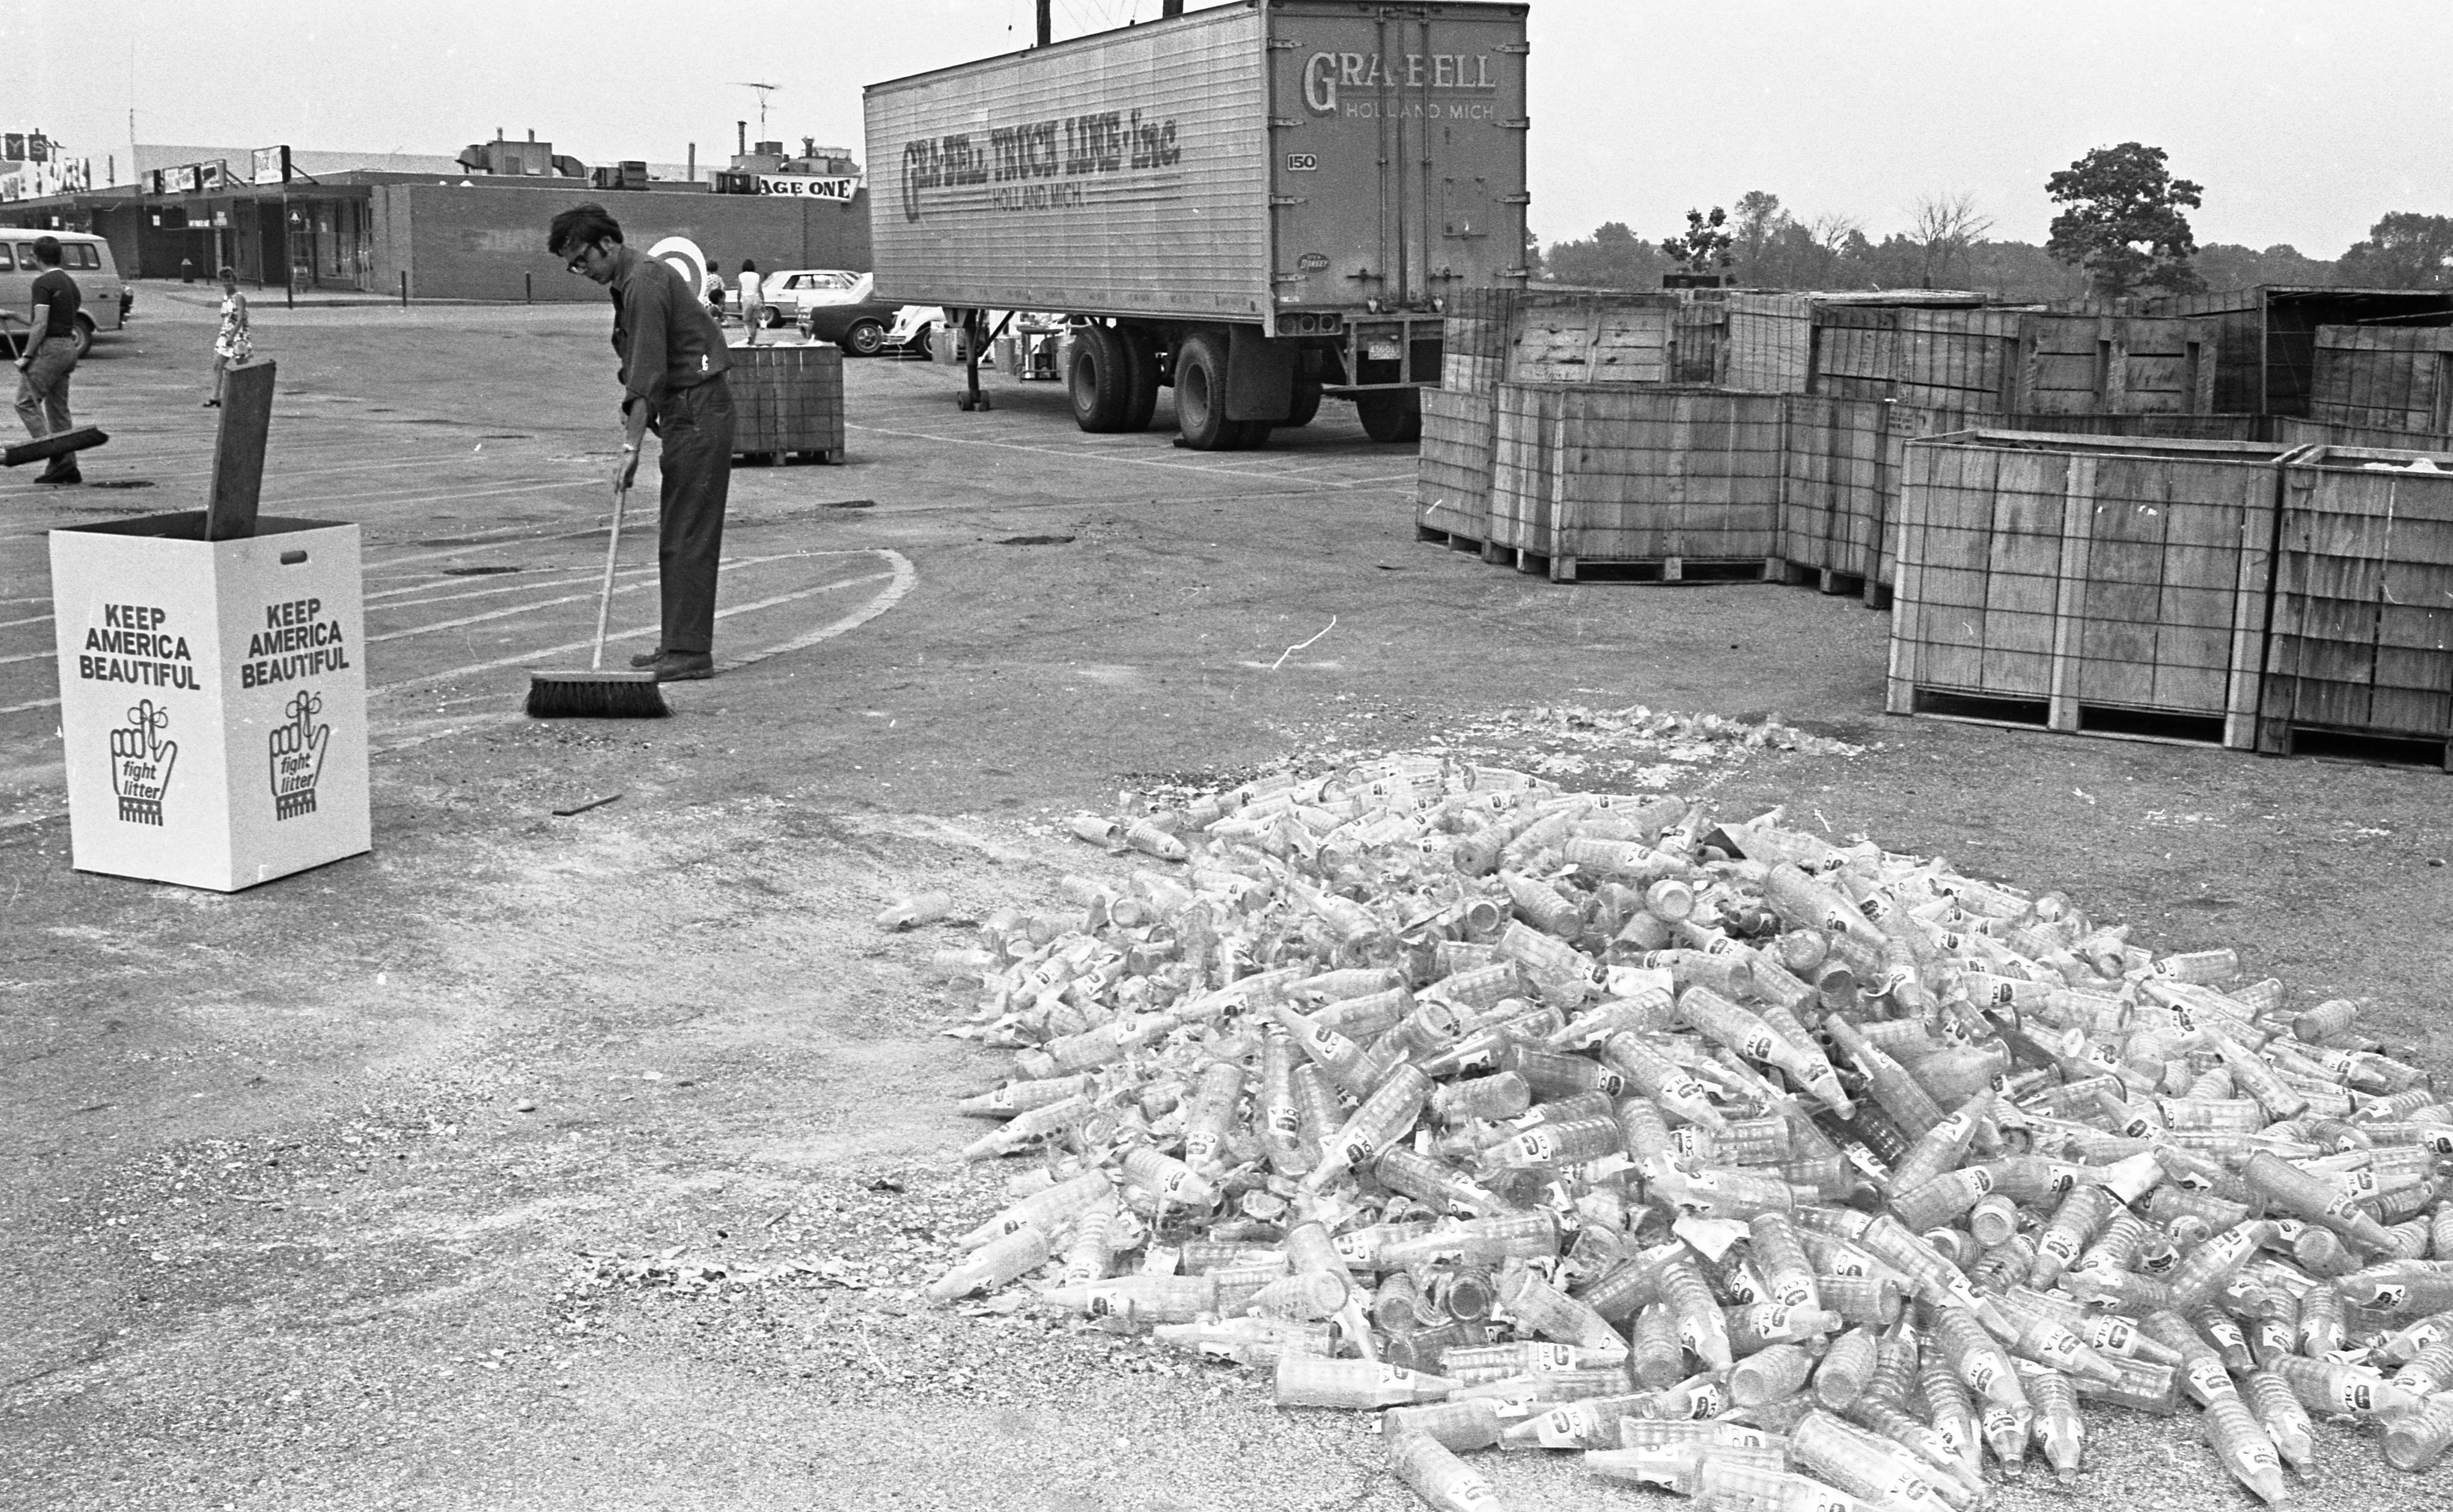 ENACT Recycling Day at Arborland Shopping Center Nets 33,000 Tons of Glass, June 1970 image